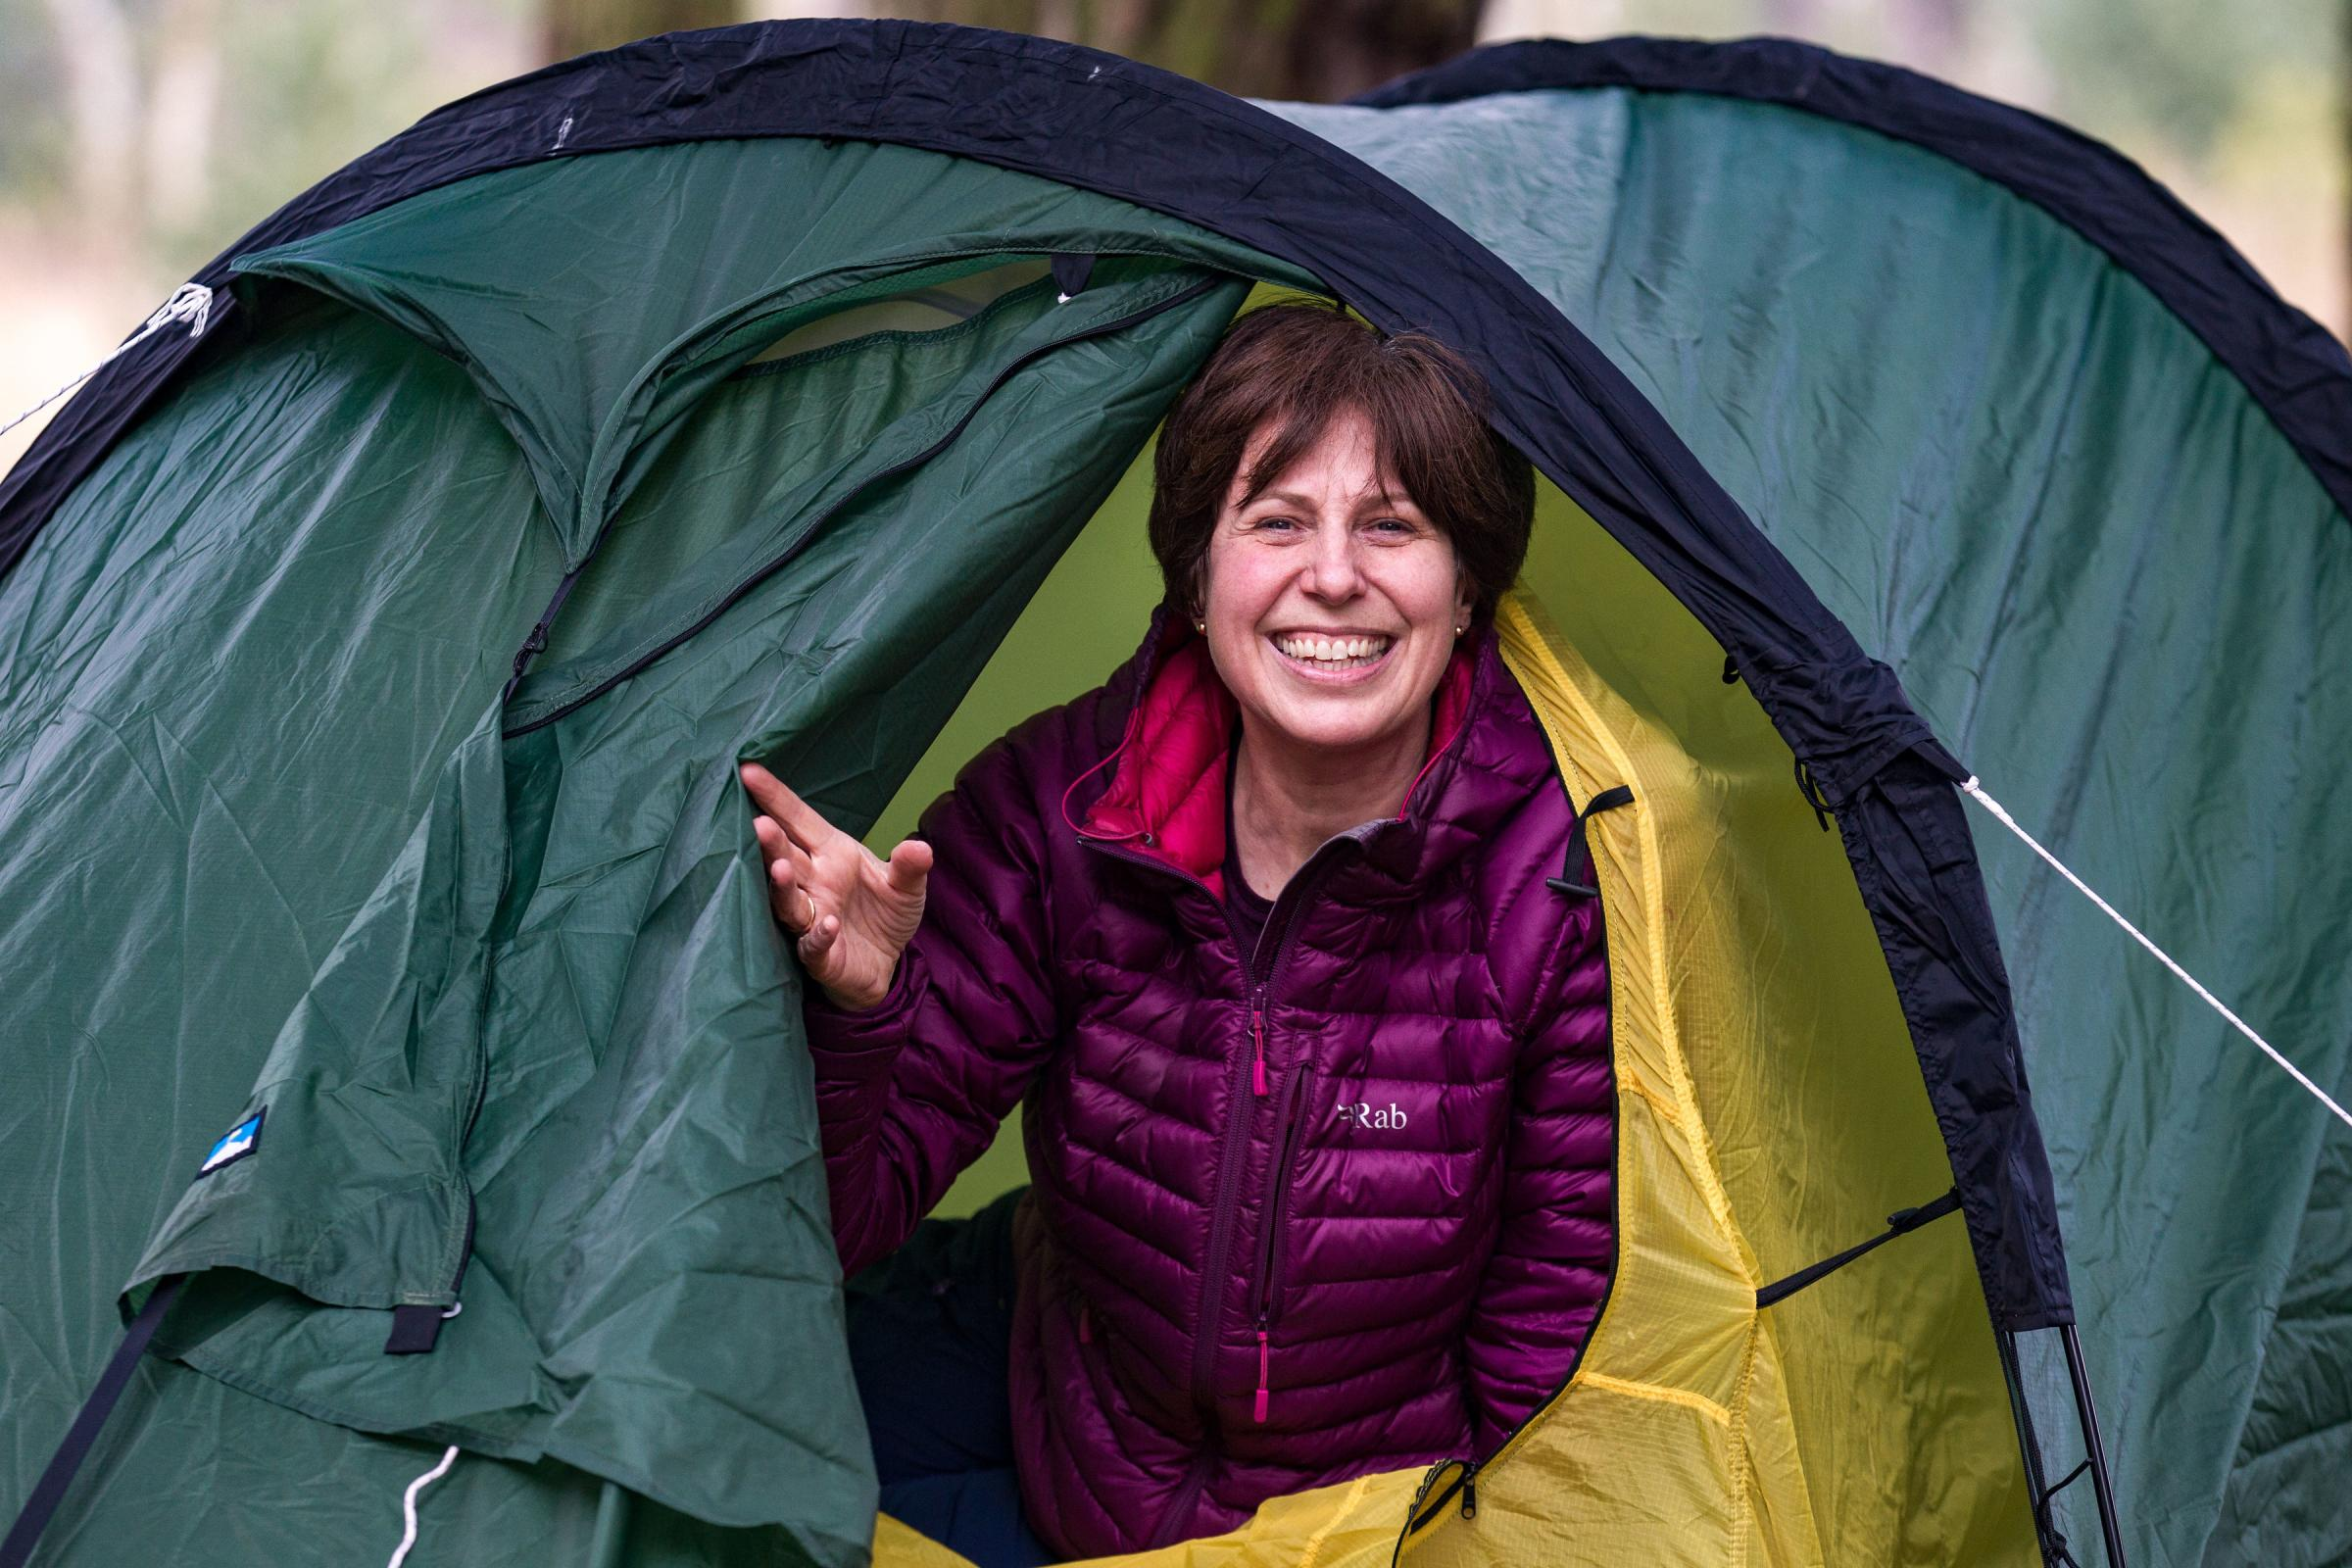 BE PREPARED: Catherine Adamson in her tent ahead of her 109-mile wild camping trek for charity Picture: Andrea Denniss